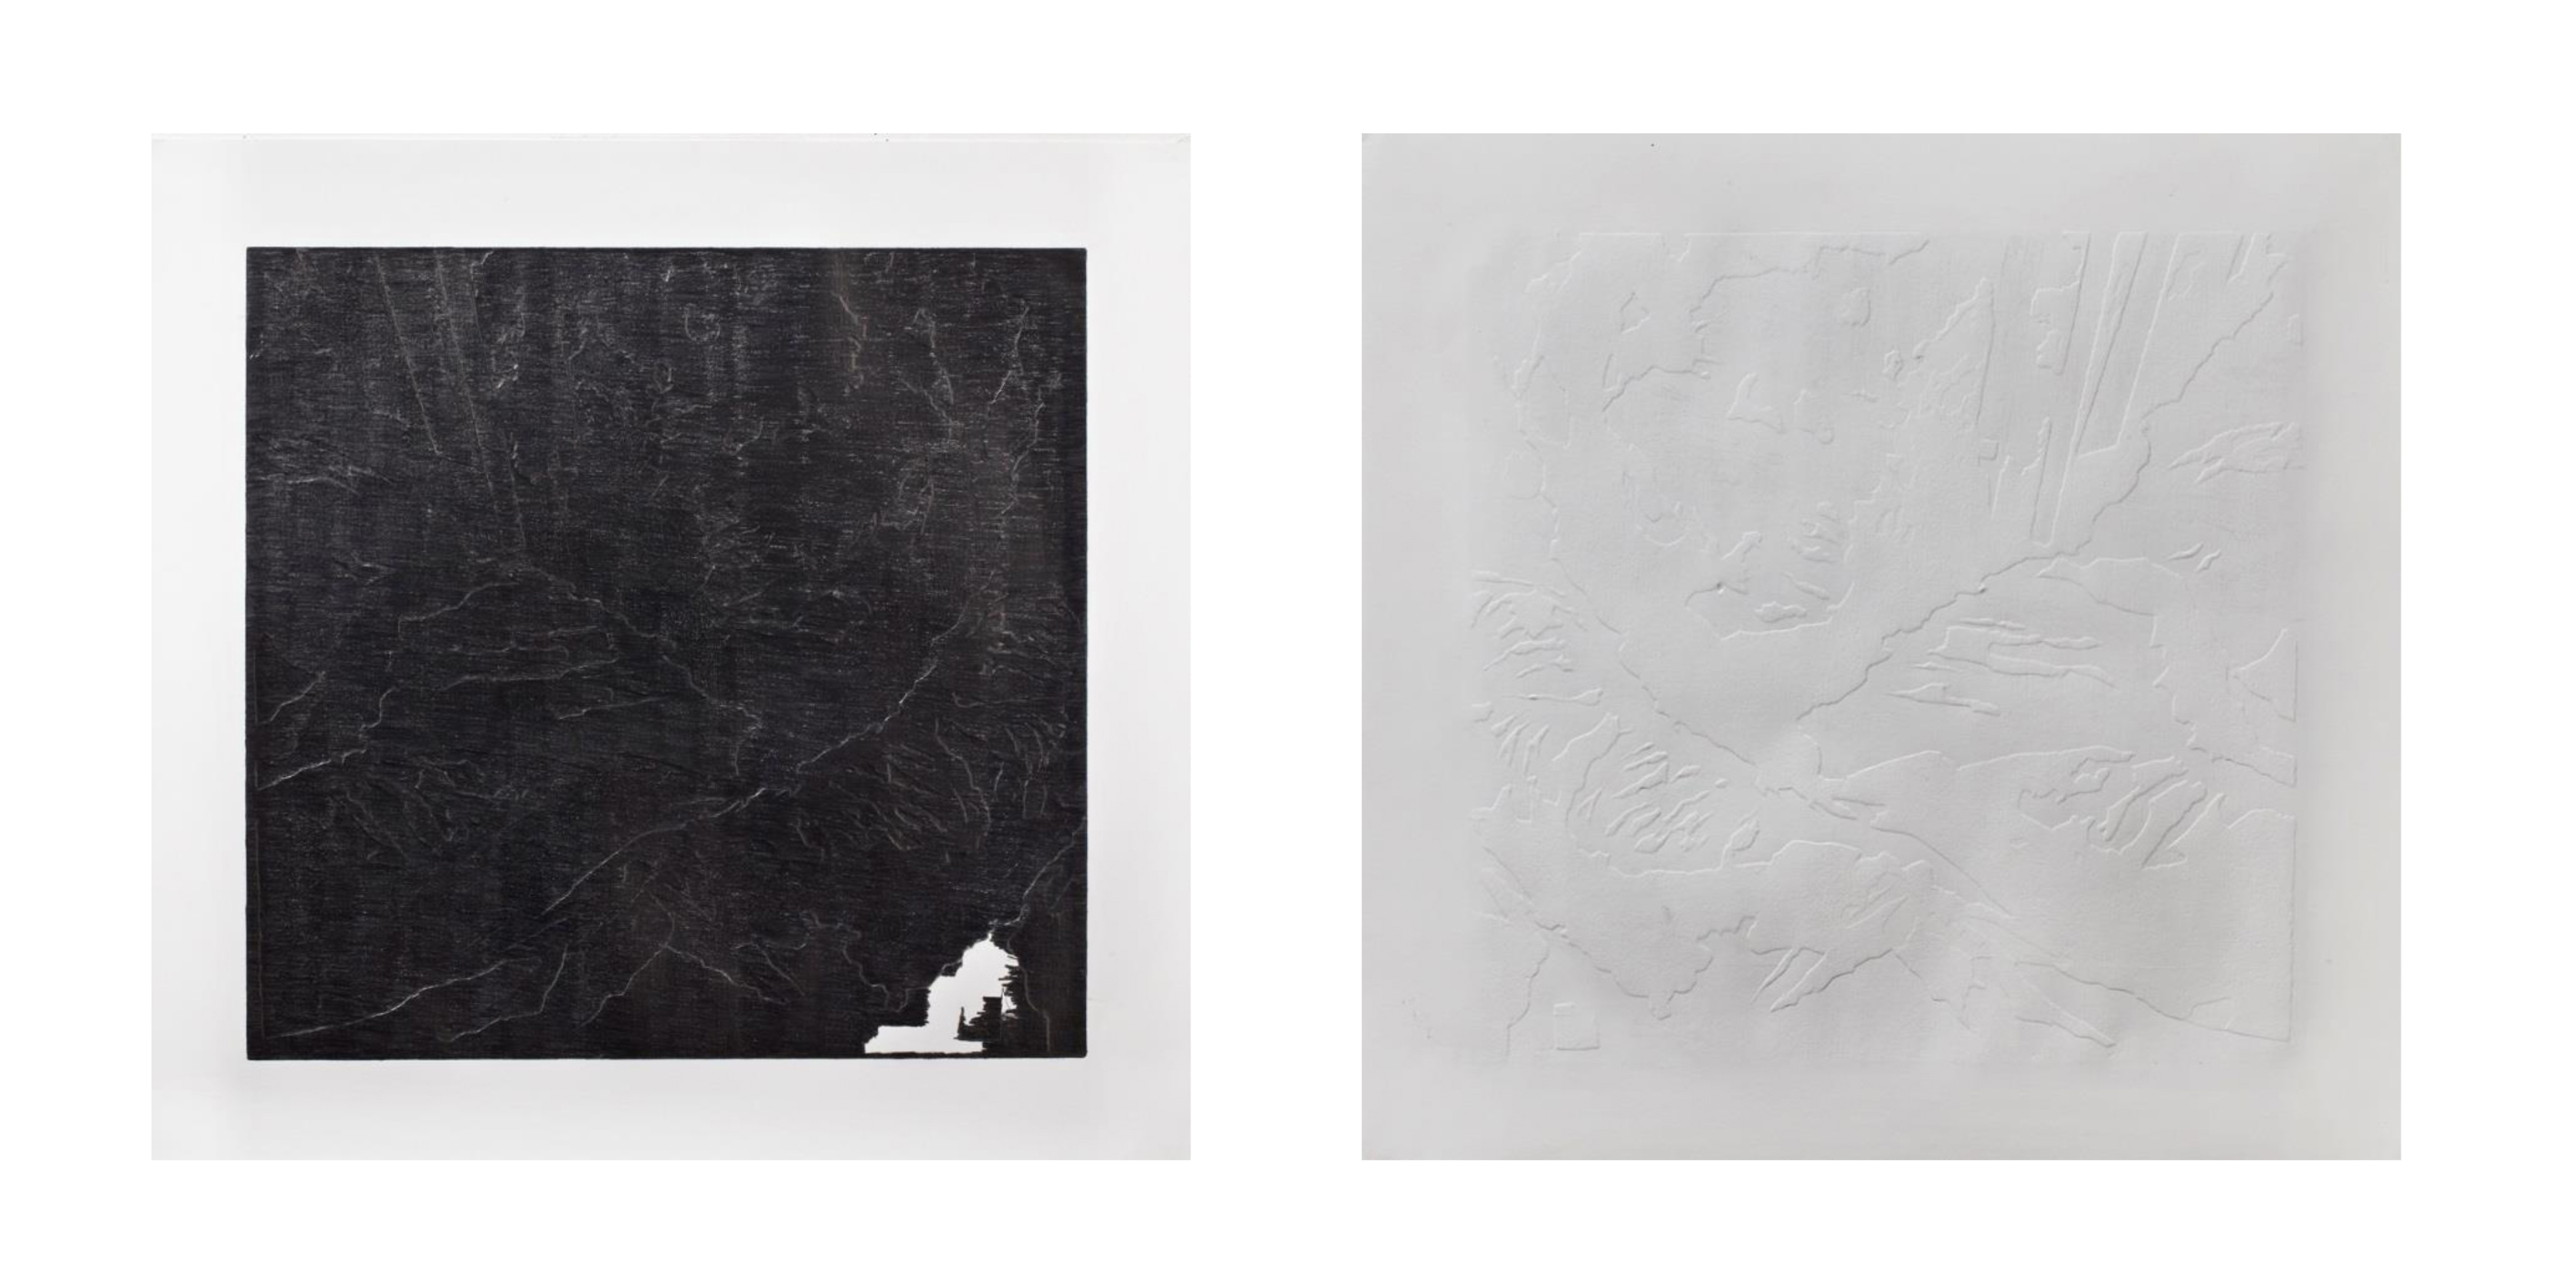 Untitled, 2015, pencil on paper, 7070 cm (the same Drawing from Front and back).